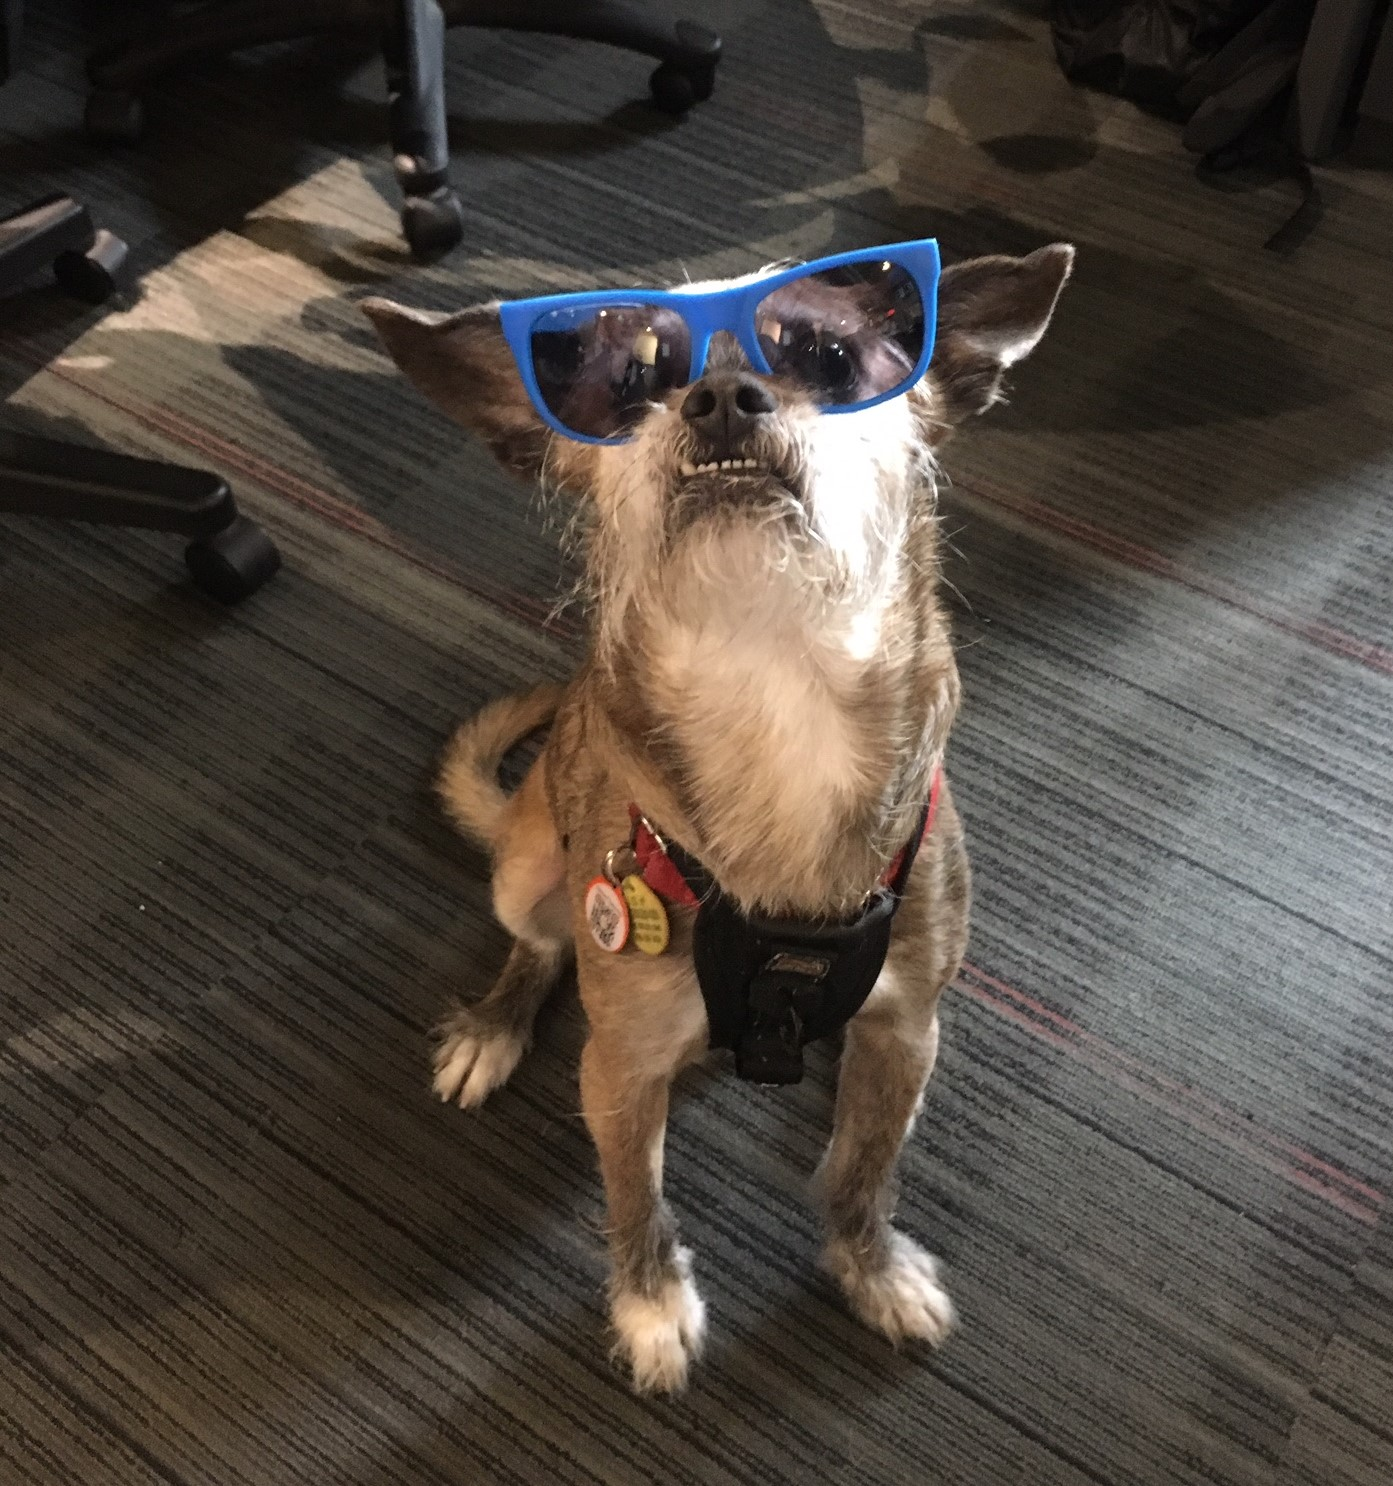 Mr Scruffles, a frequent Presagia dog, rocking some sunglasses